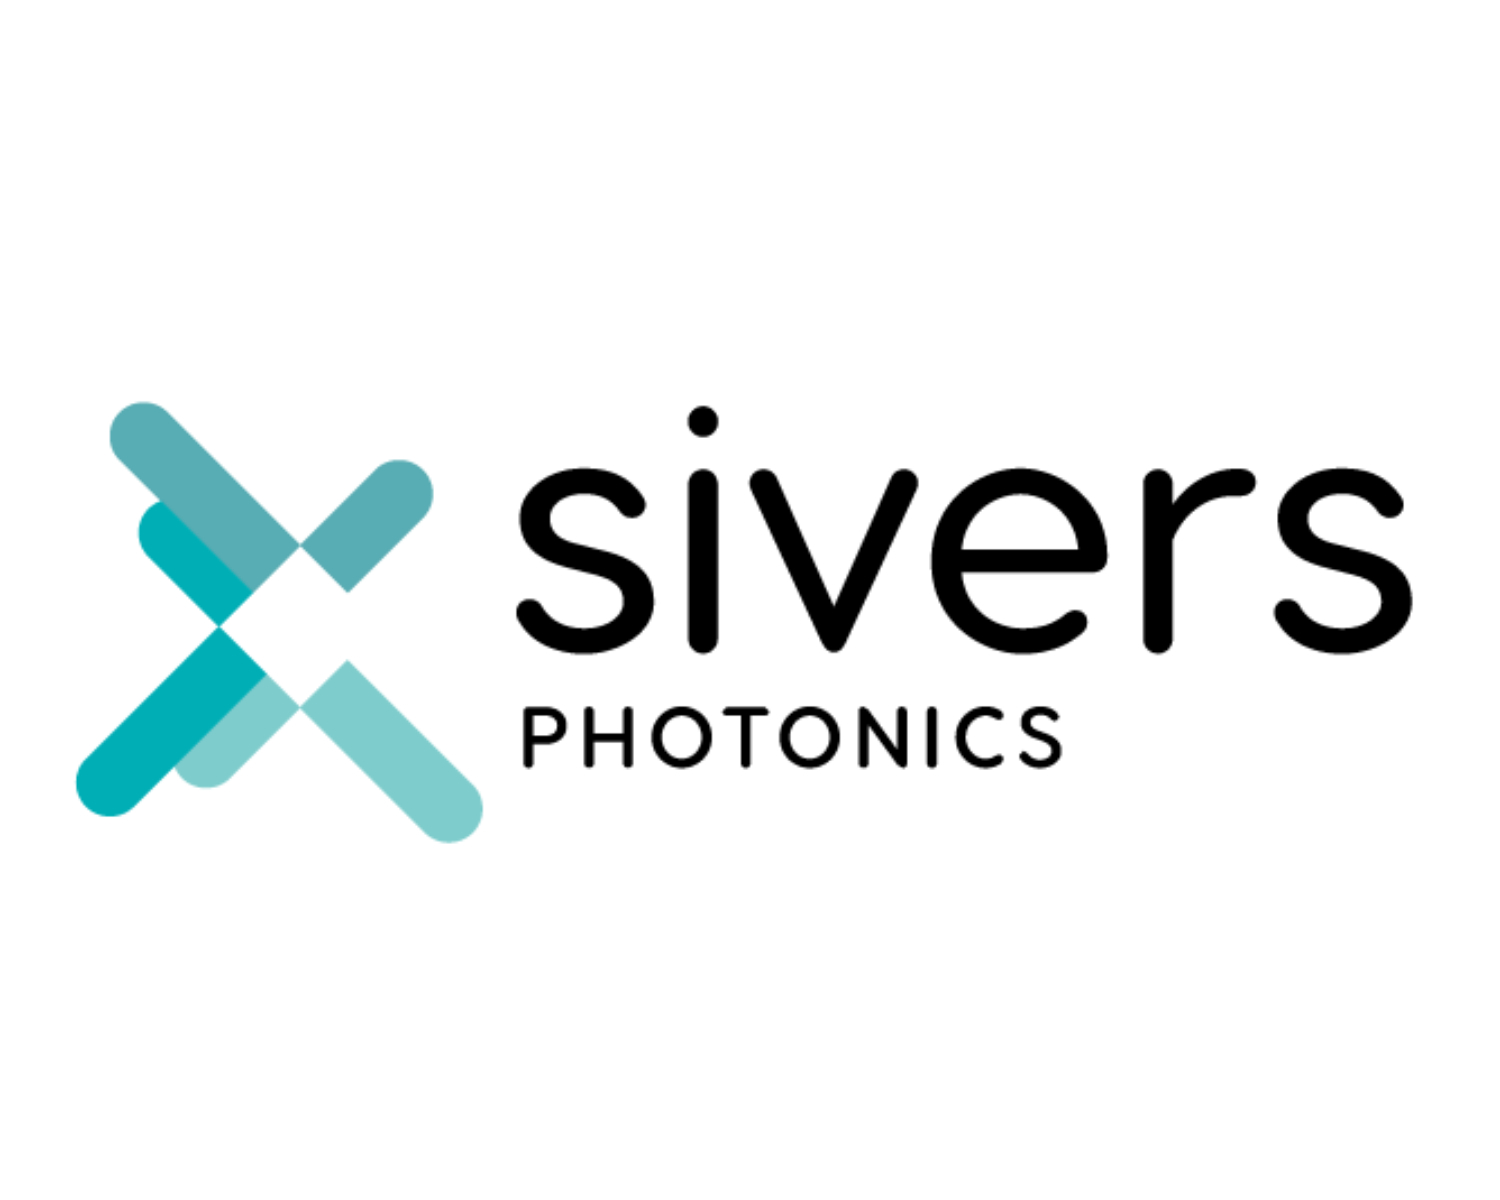 Sivers Photonics